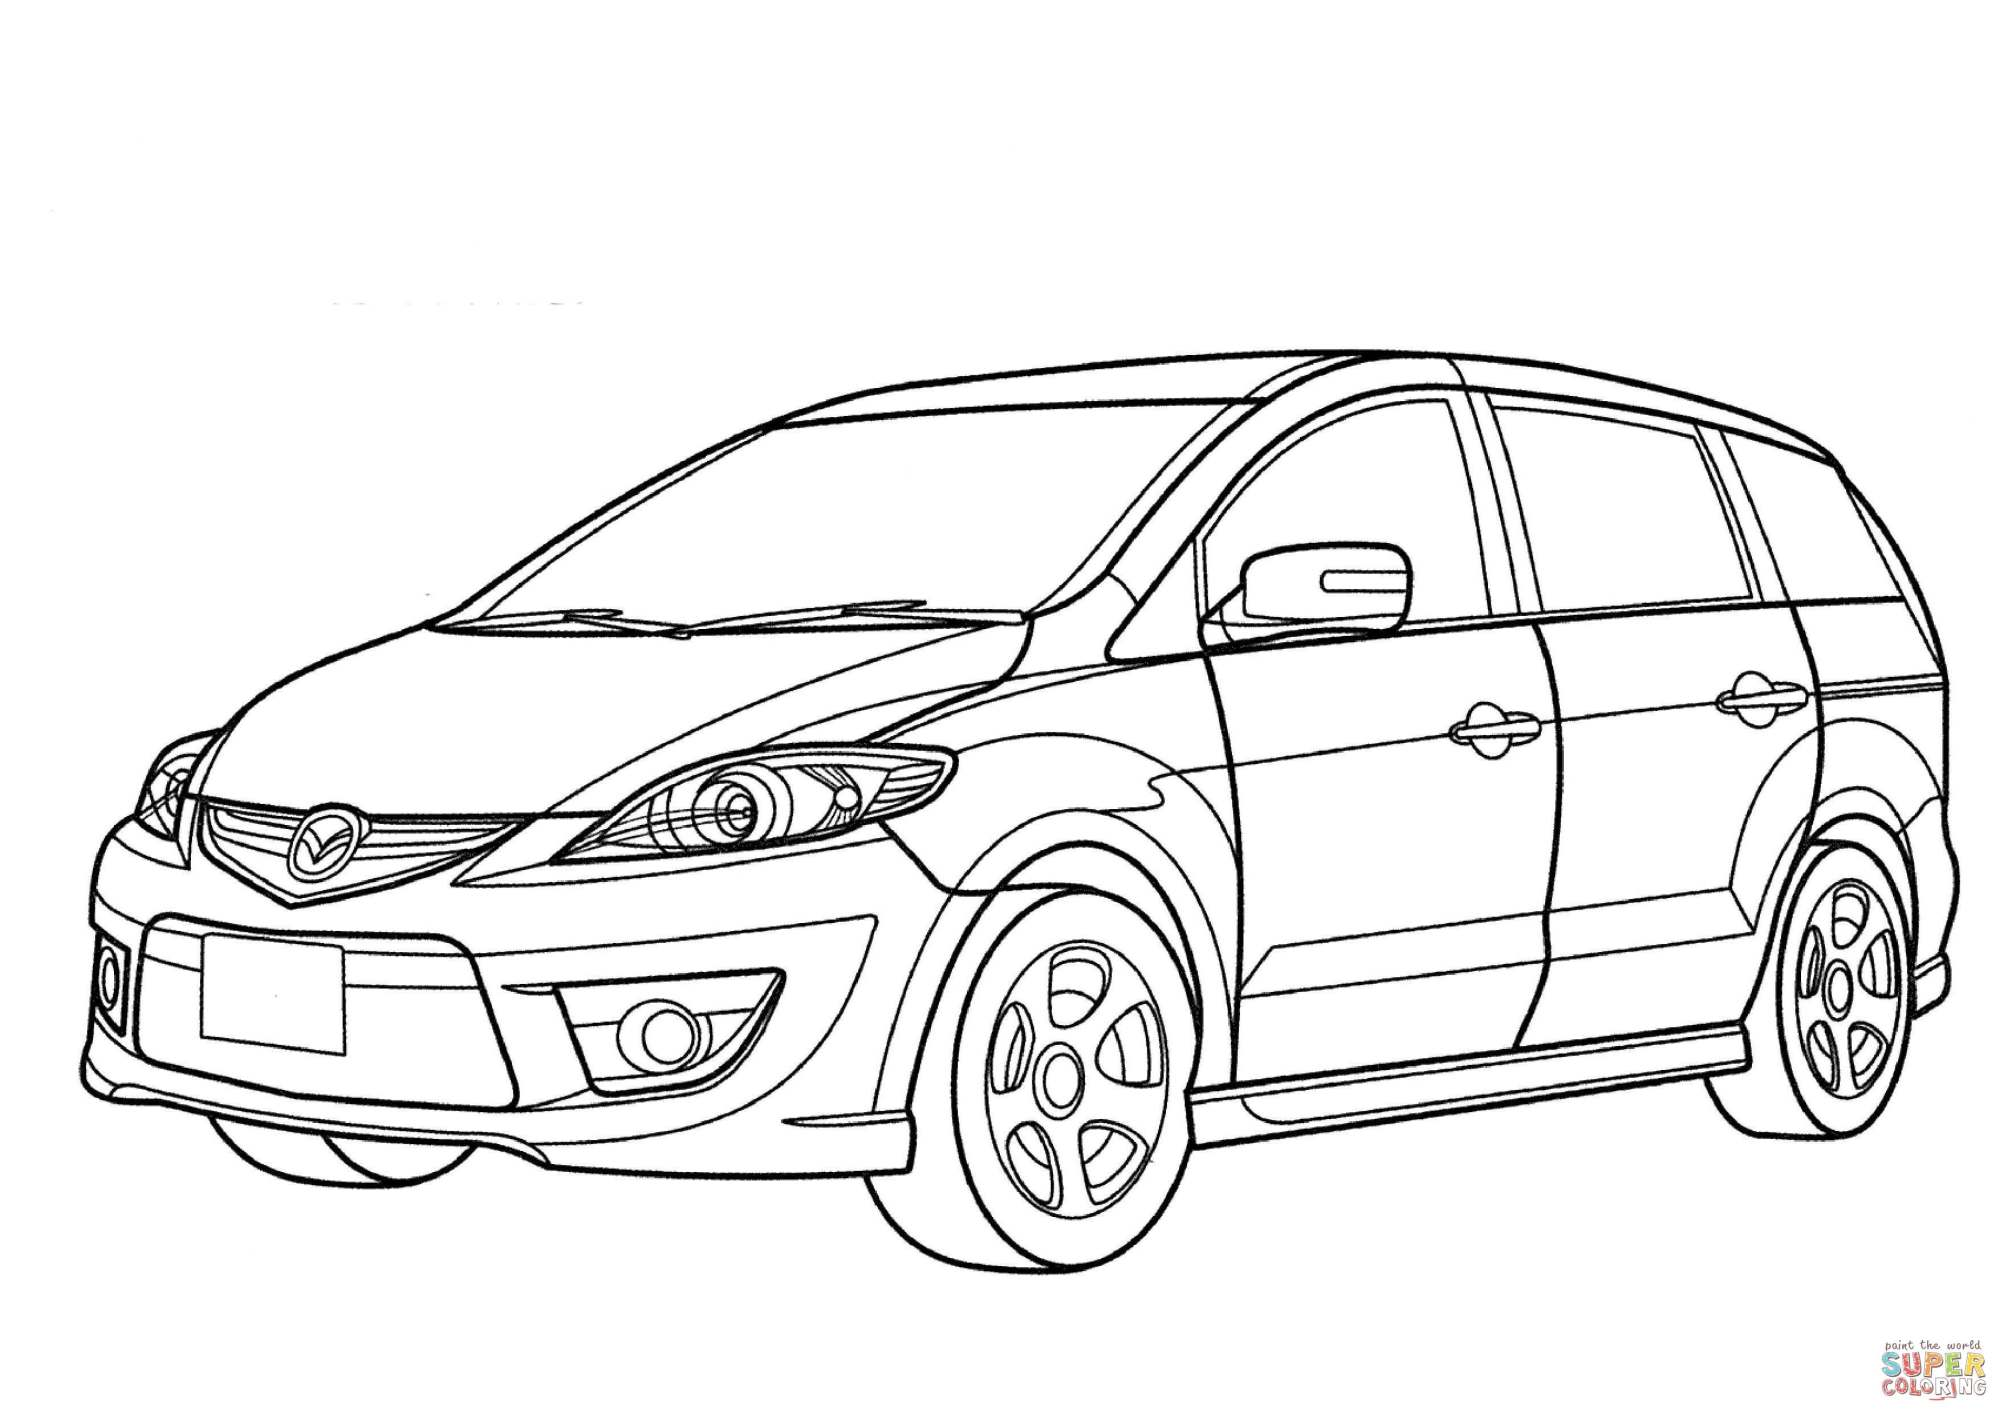 hight resolution of 3508x2480 mazda premacy minivan coloring page free printable coloring pages